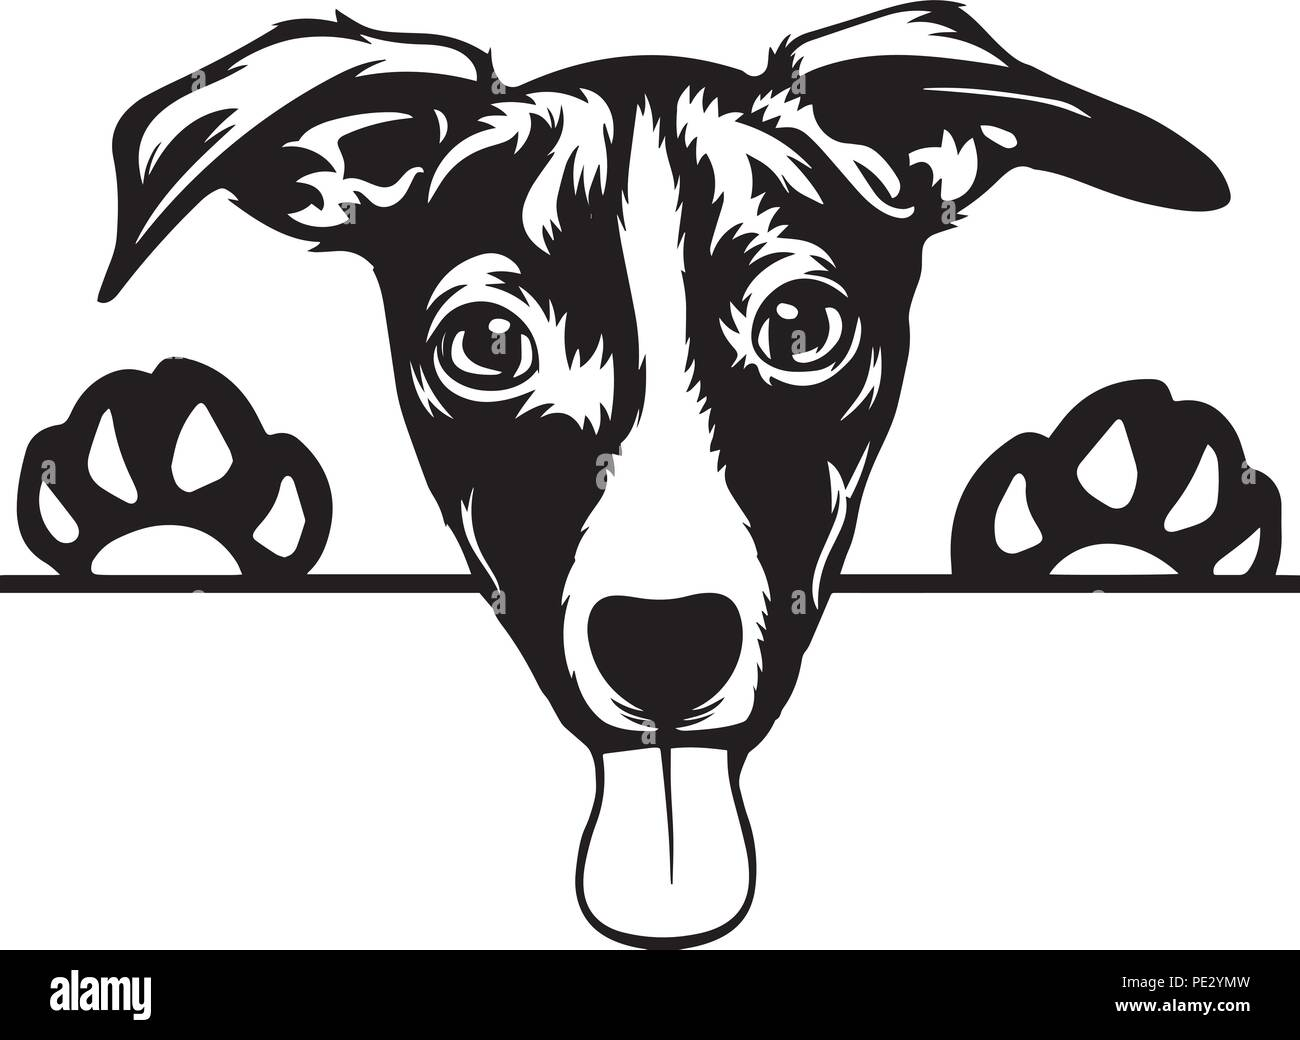 Jack Russell Terrier Dog Breed Pet Puppy Isolated Head Face Stock Vector